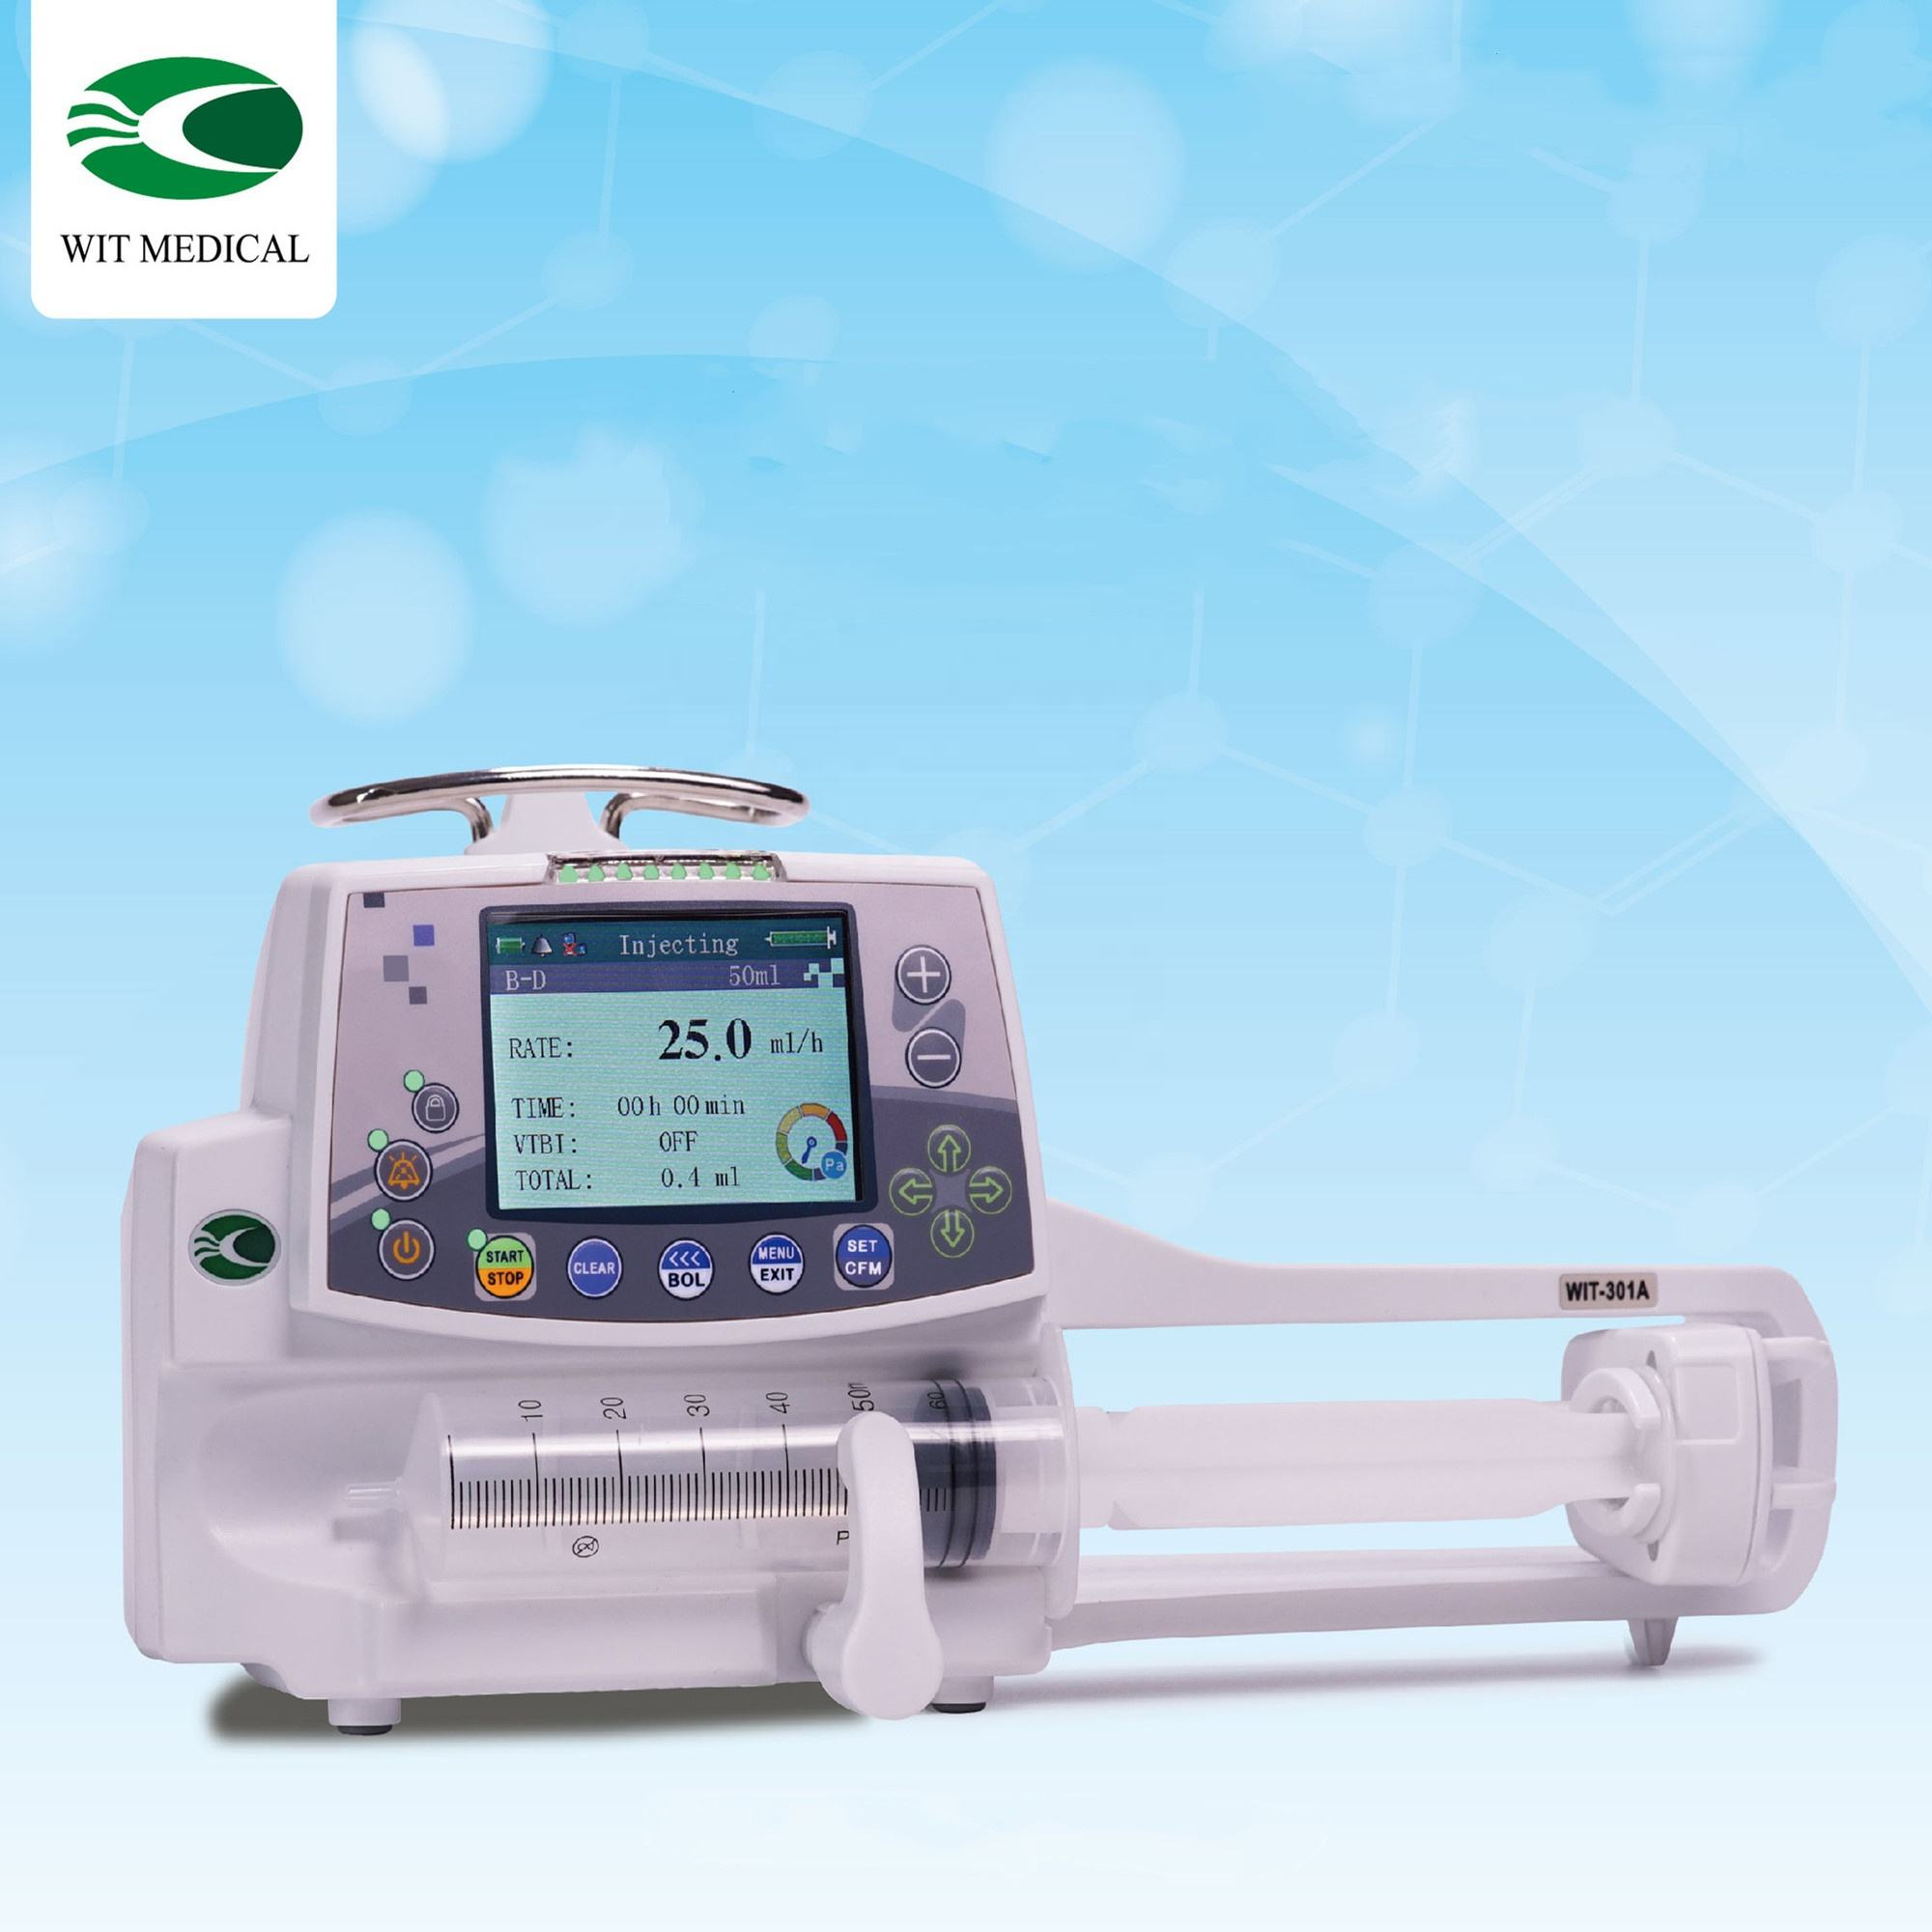 Factory Store - Medical Syringe Pump, European Standard, TUV CE & ISO13485, RoHS